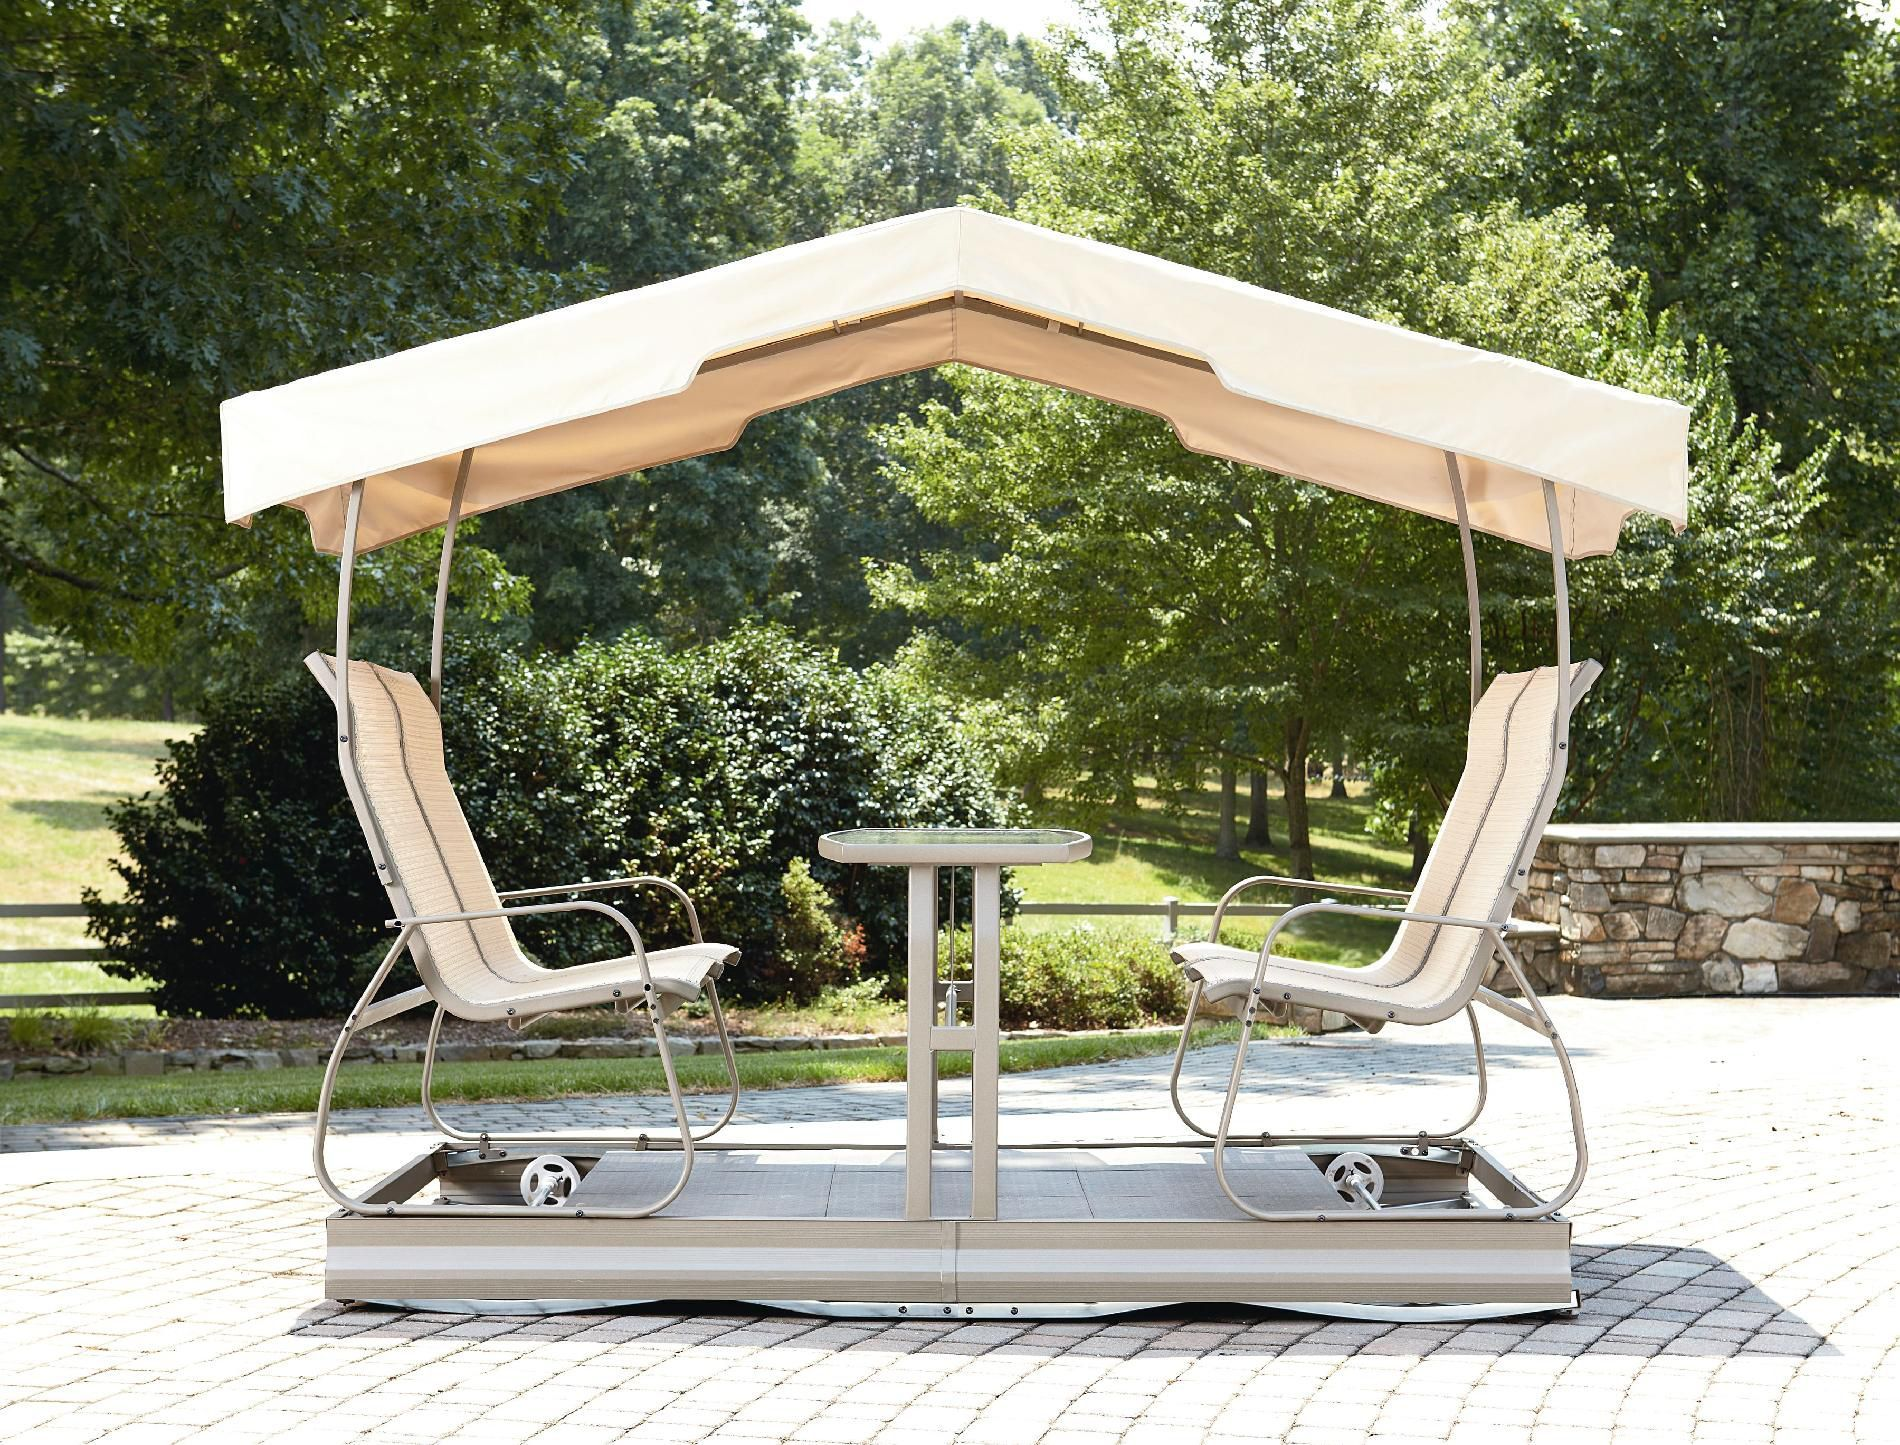 Patio U0026 Outdoor Patio Glider Swing With Canopy Beige Polyester Canopy Cover  4 Person Beige Chair Small Center Table Face To Face Design Sturdy Steel  Frame ...